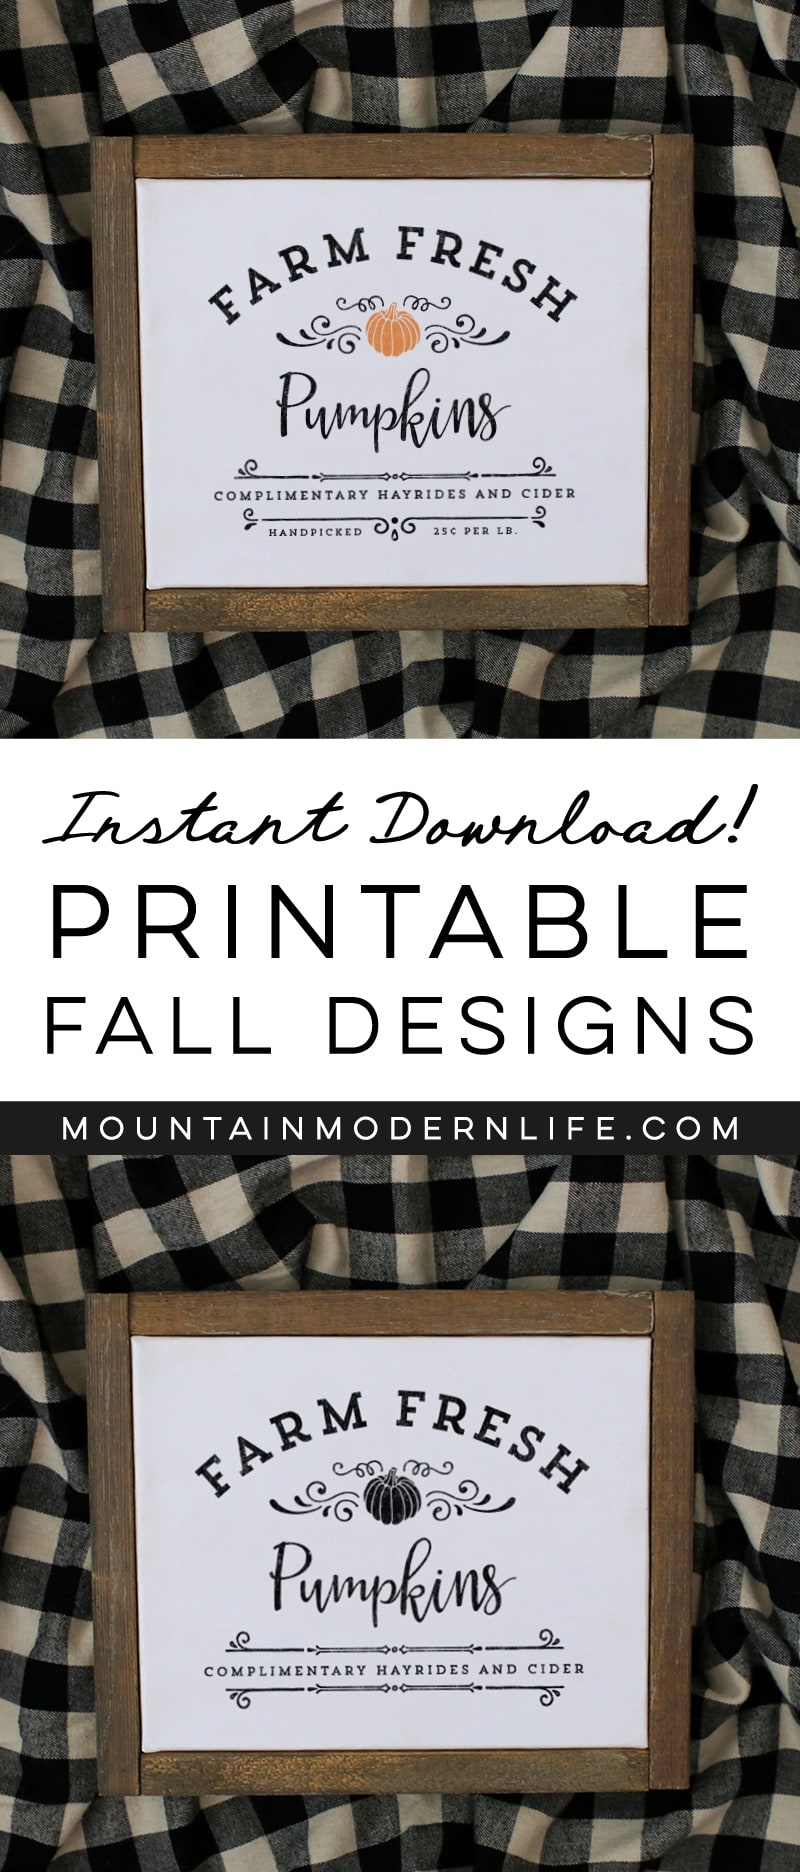 See how easy it is to make this Farm Fresh Pumpkins Sign from a Printable using this image transfer method! Perfect for decorating your own home or to give away as gifts. MountainModernLife.com